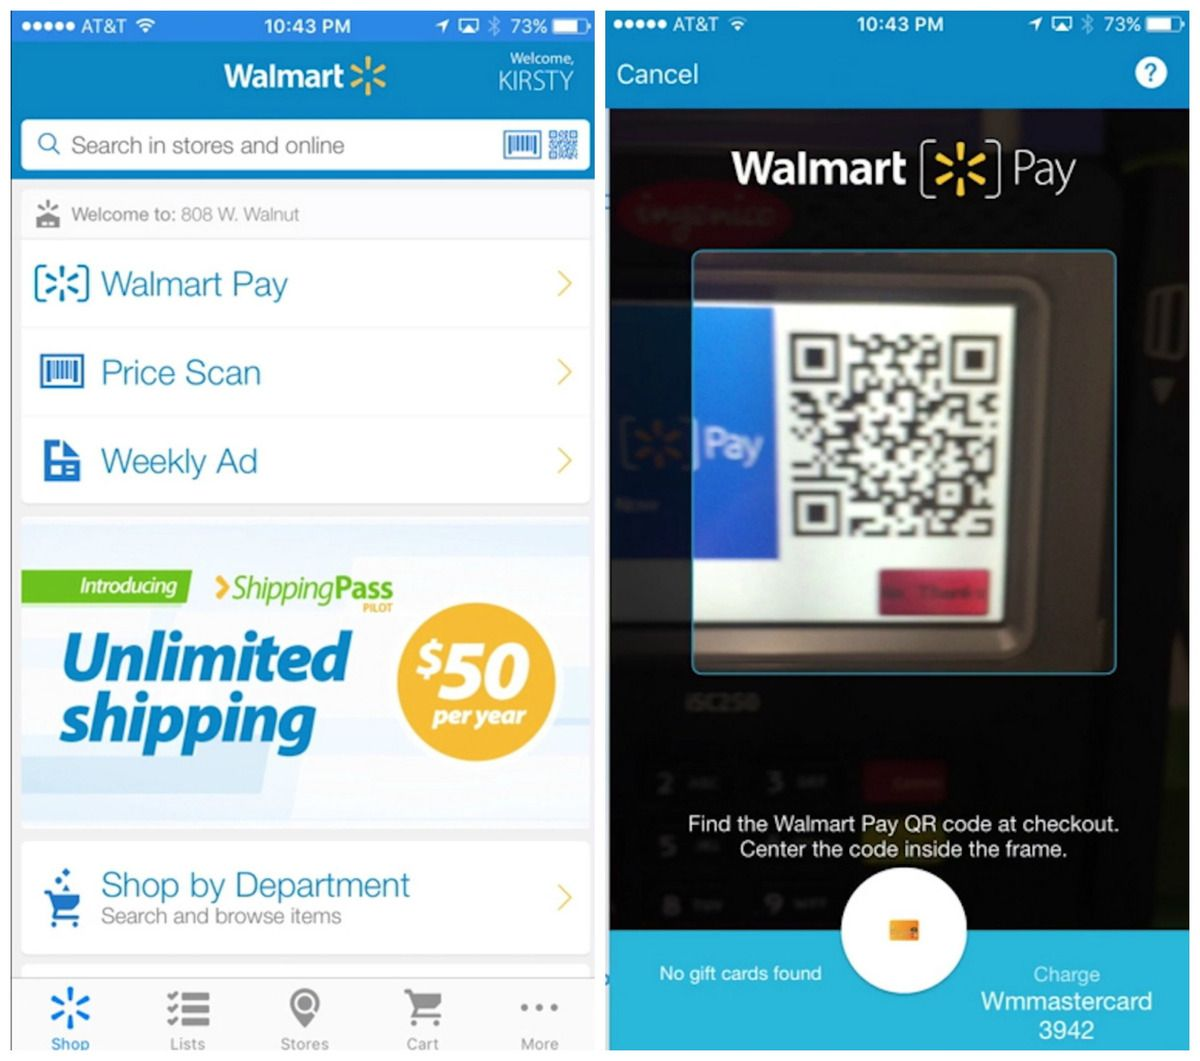 Walmart's Apple Pay competitor uses QR codes | Technology over Time